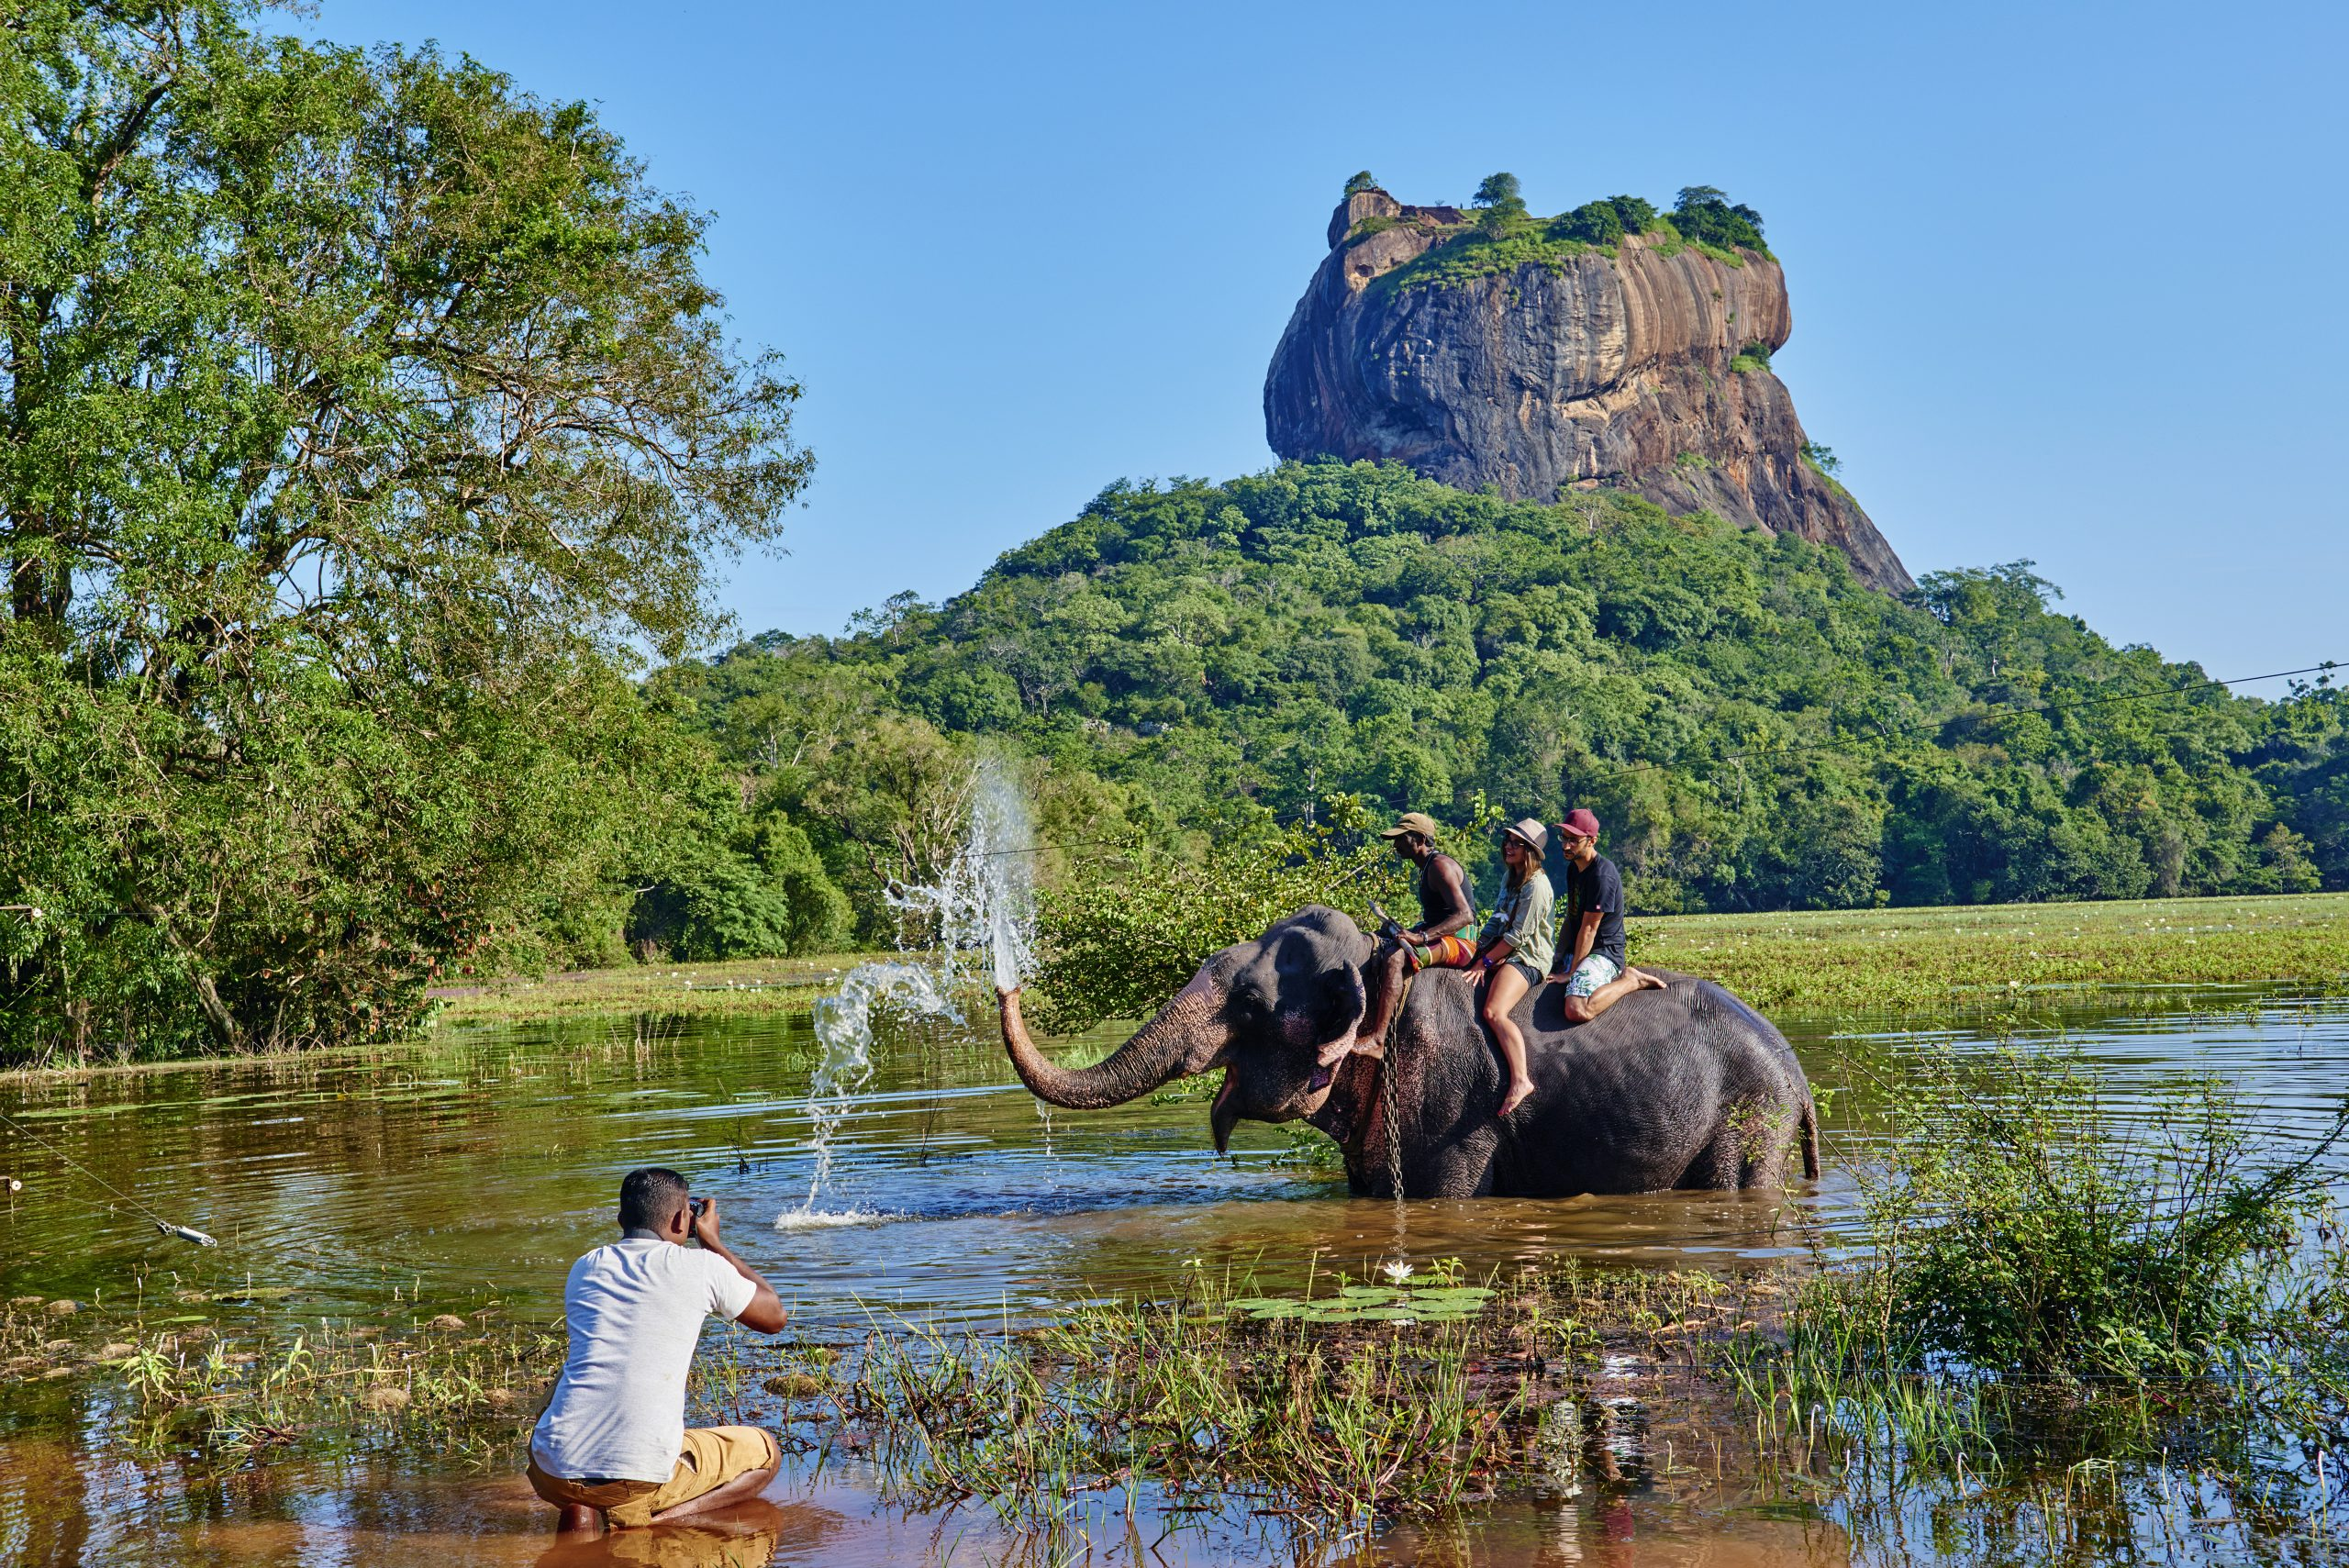 Sri Lanka, Sigiriya Lion Rock fortress